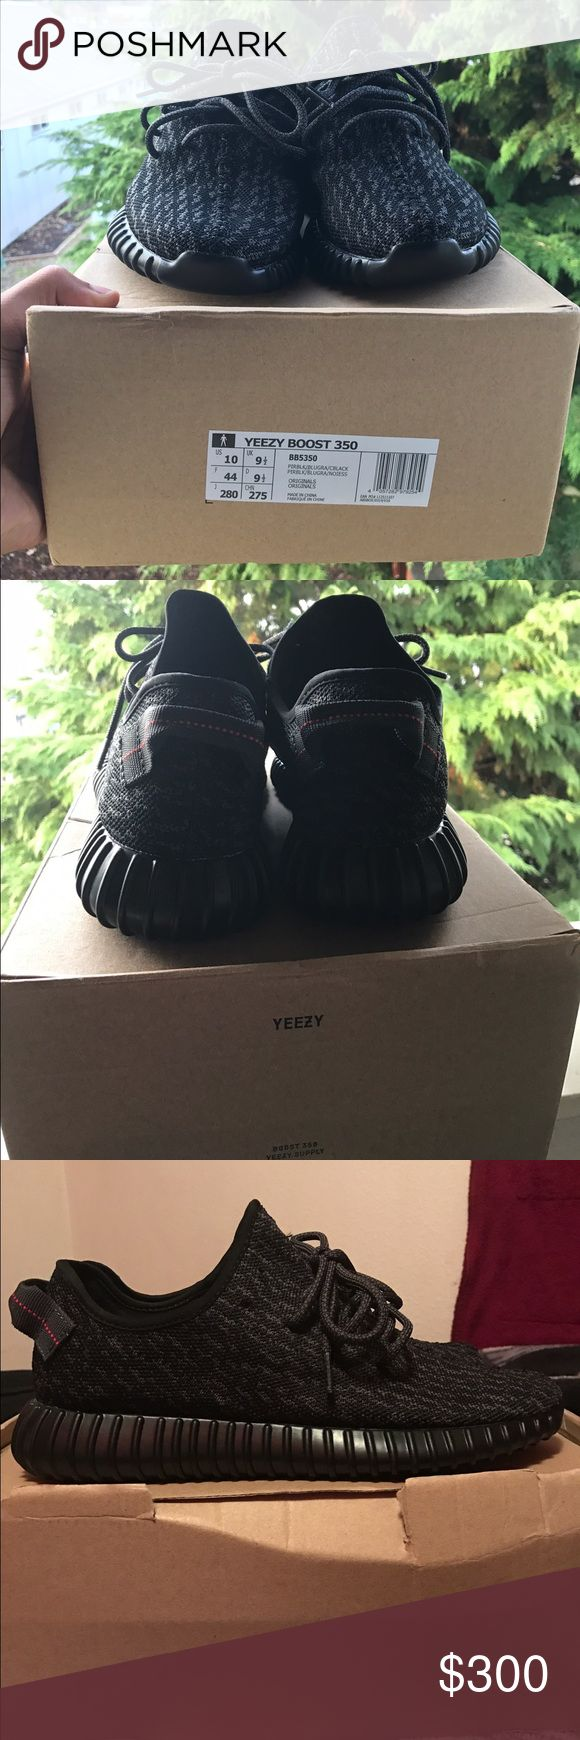 afdfe0d5c yeezy boost 350 v2 cost how much are yeezy boost adidas ebay